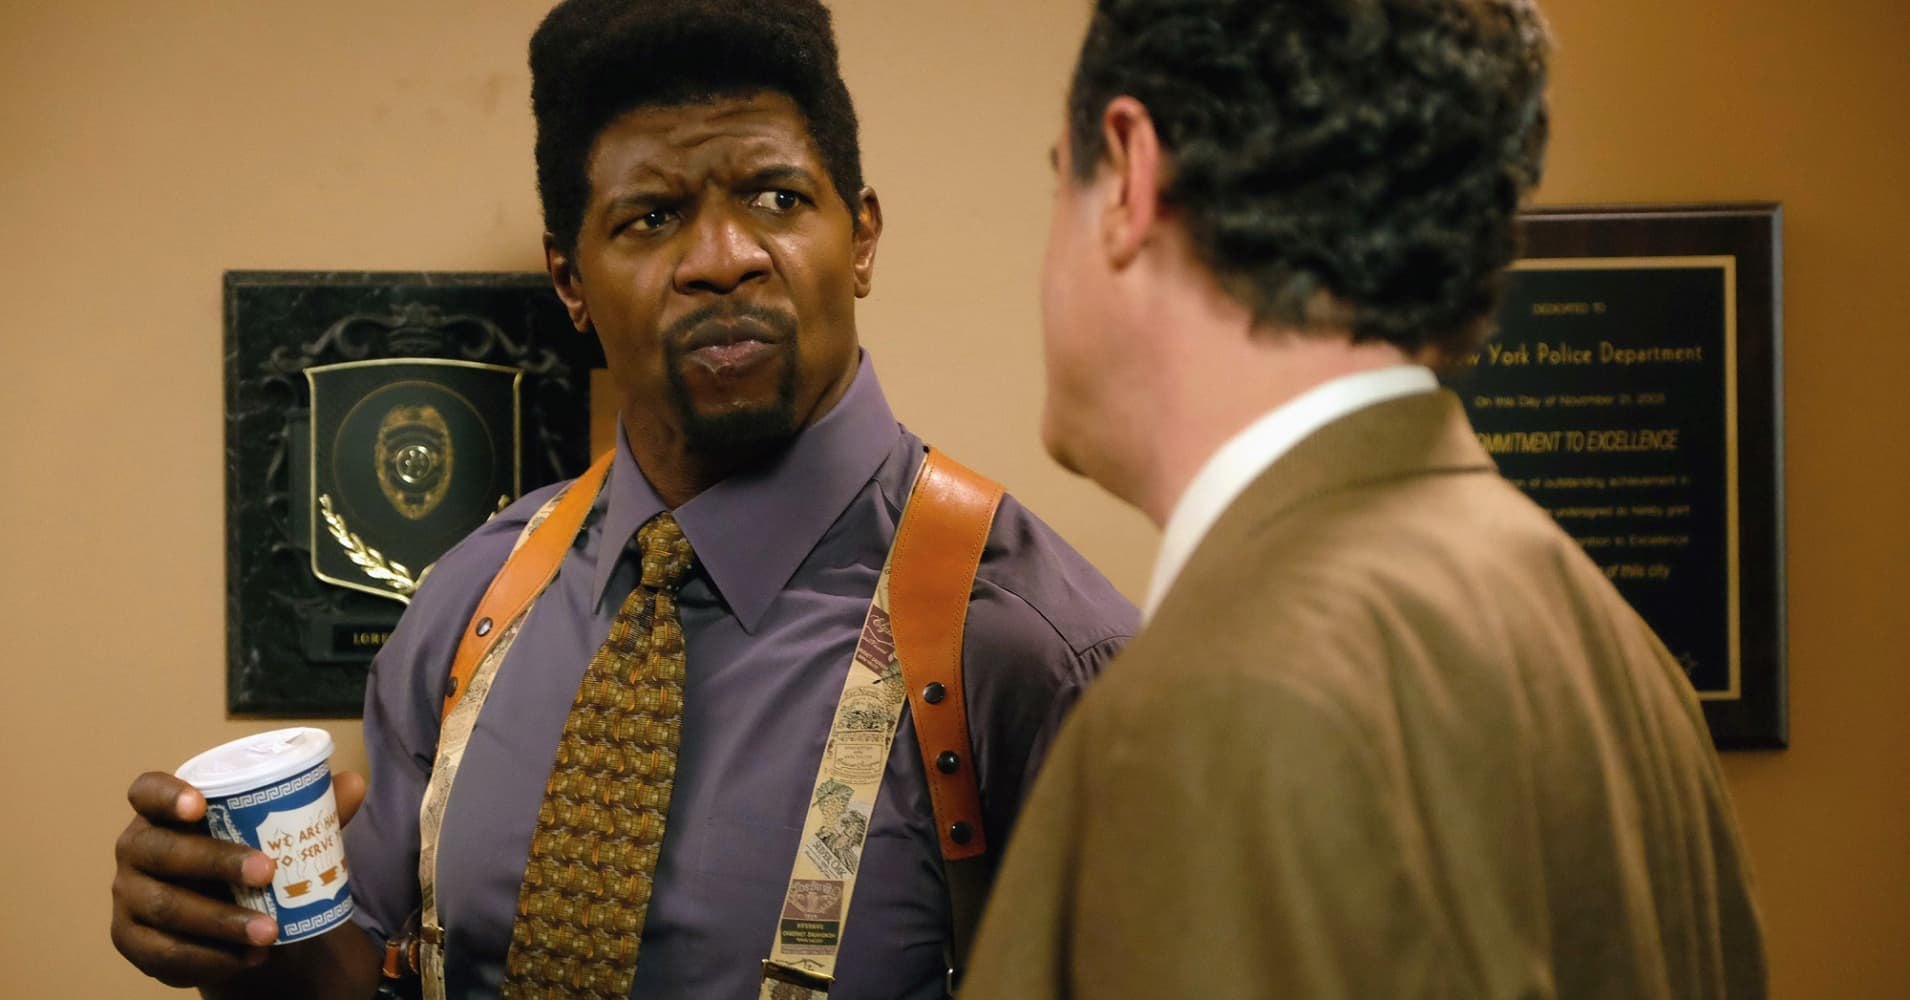 Brooklyn Nine-Nine- 'Terry Kitties' Episode 319 -- Pictured: (l-r) Terry Crews as Terry Jeffords, Matt Besser as Holderton